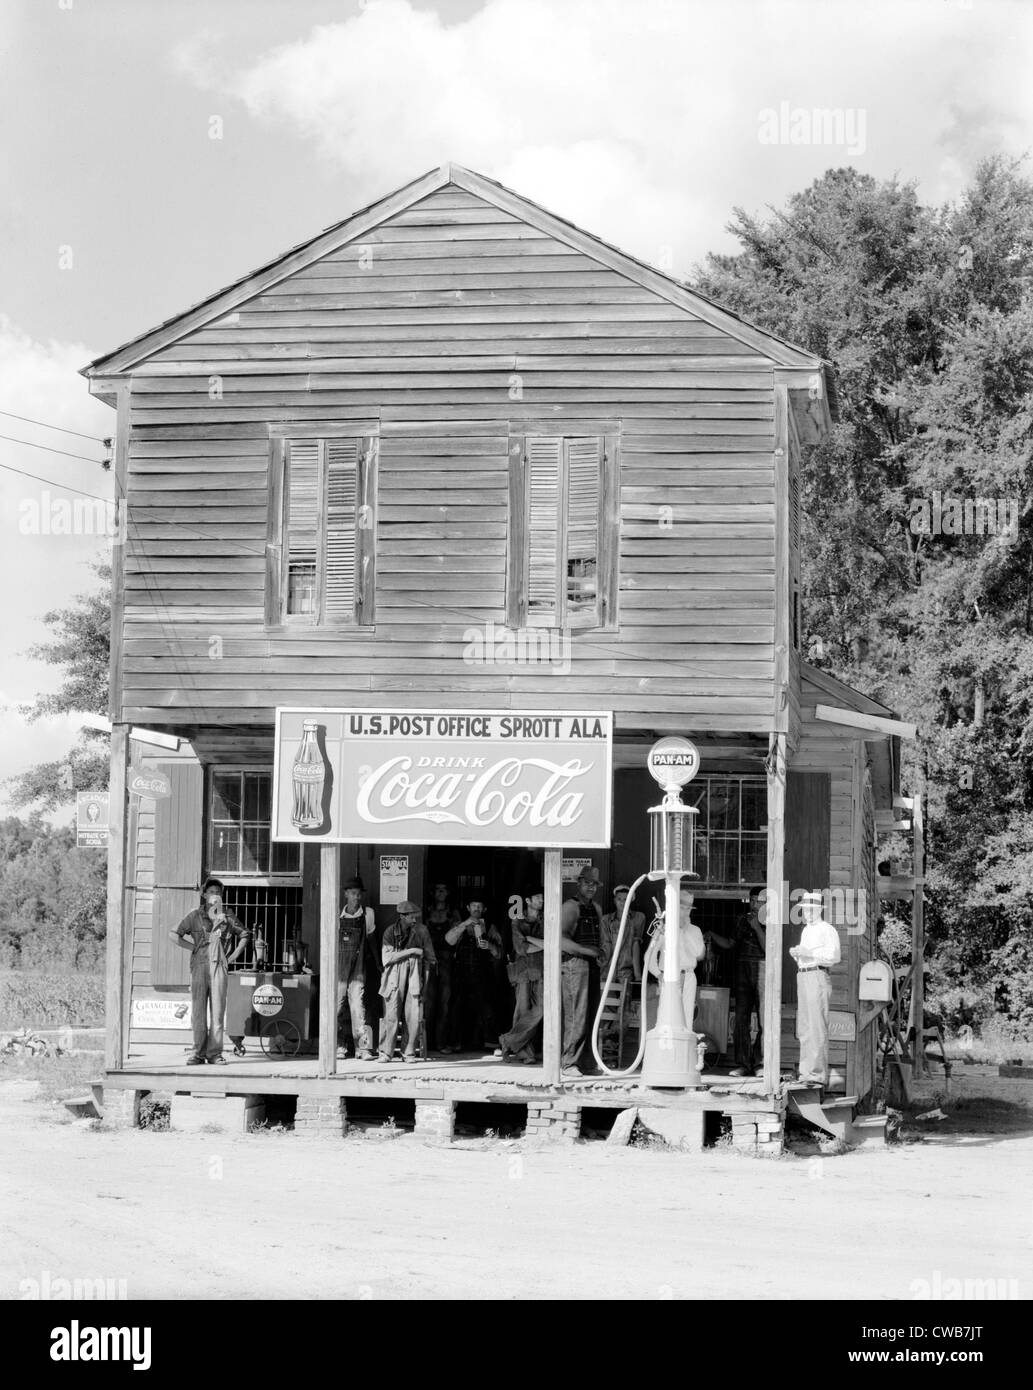 Crossroads General Store and Post Office, Sprott Alabama. Published in the book, 'Let Us Now Praise Famous Men'. - Stock Image